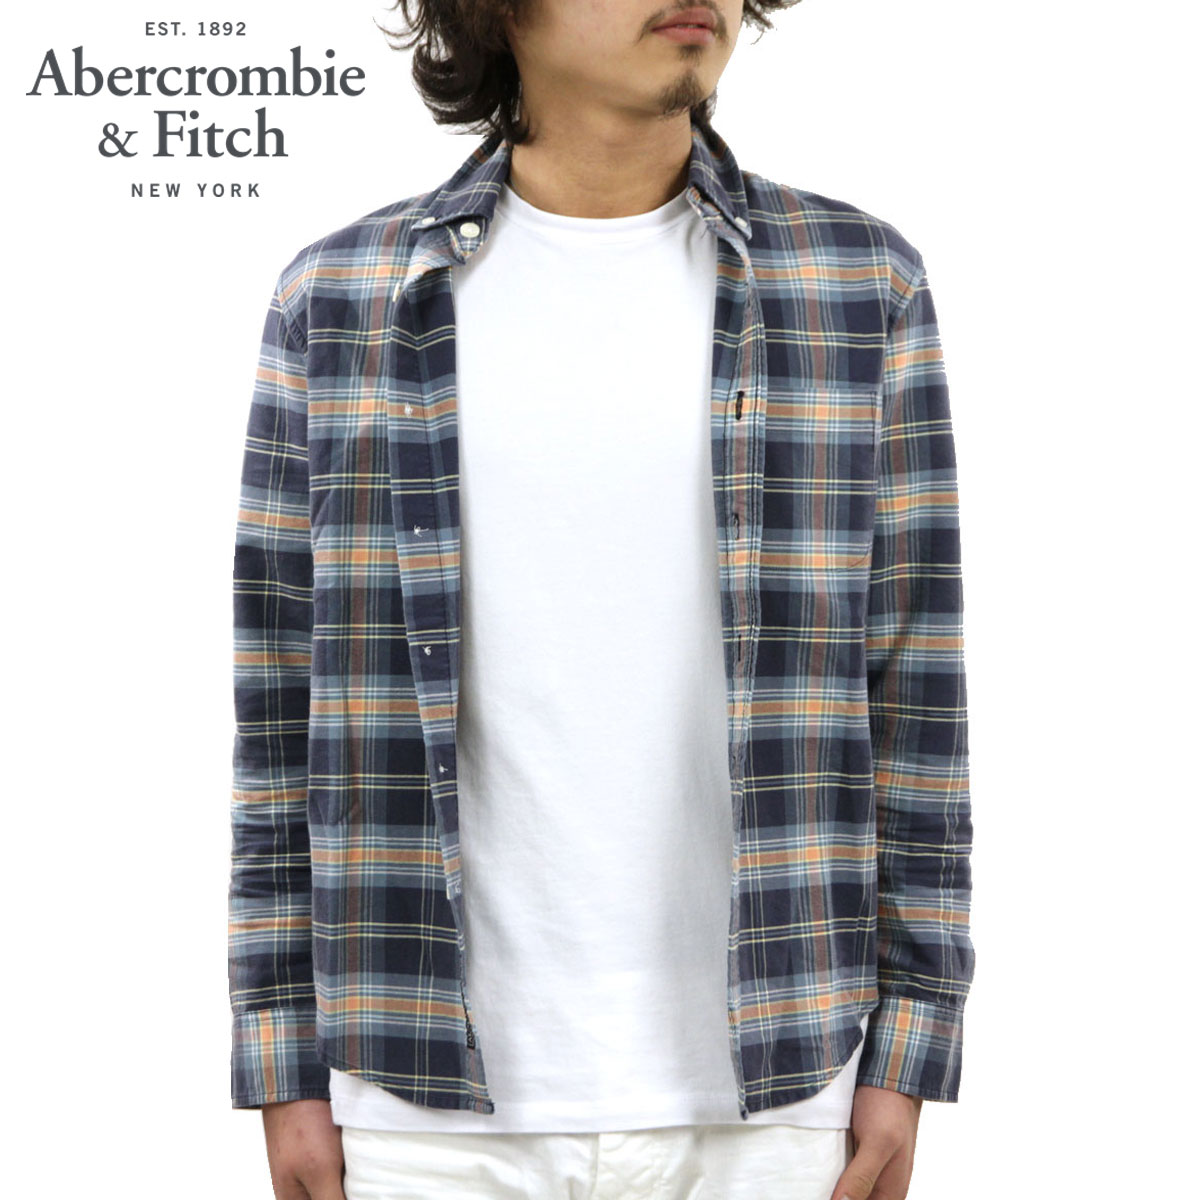 アバクロ Abercrombie&Fitch 正規品 メンズ 長袖シャツ Bleached Plaid Oxford Shirt 125-168-2359-208 D00S20